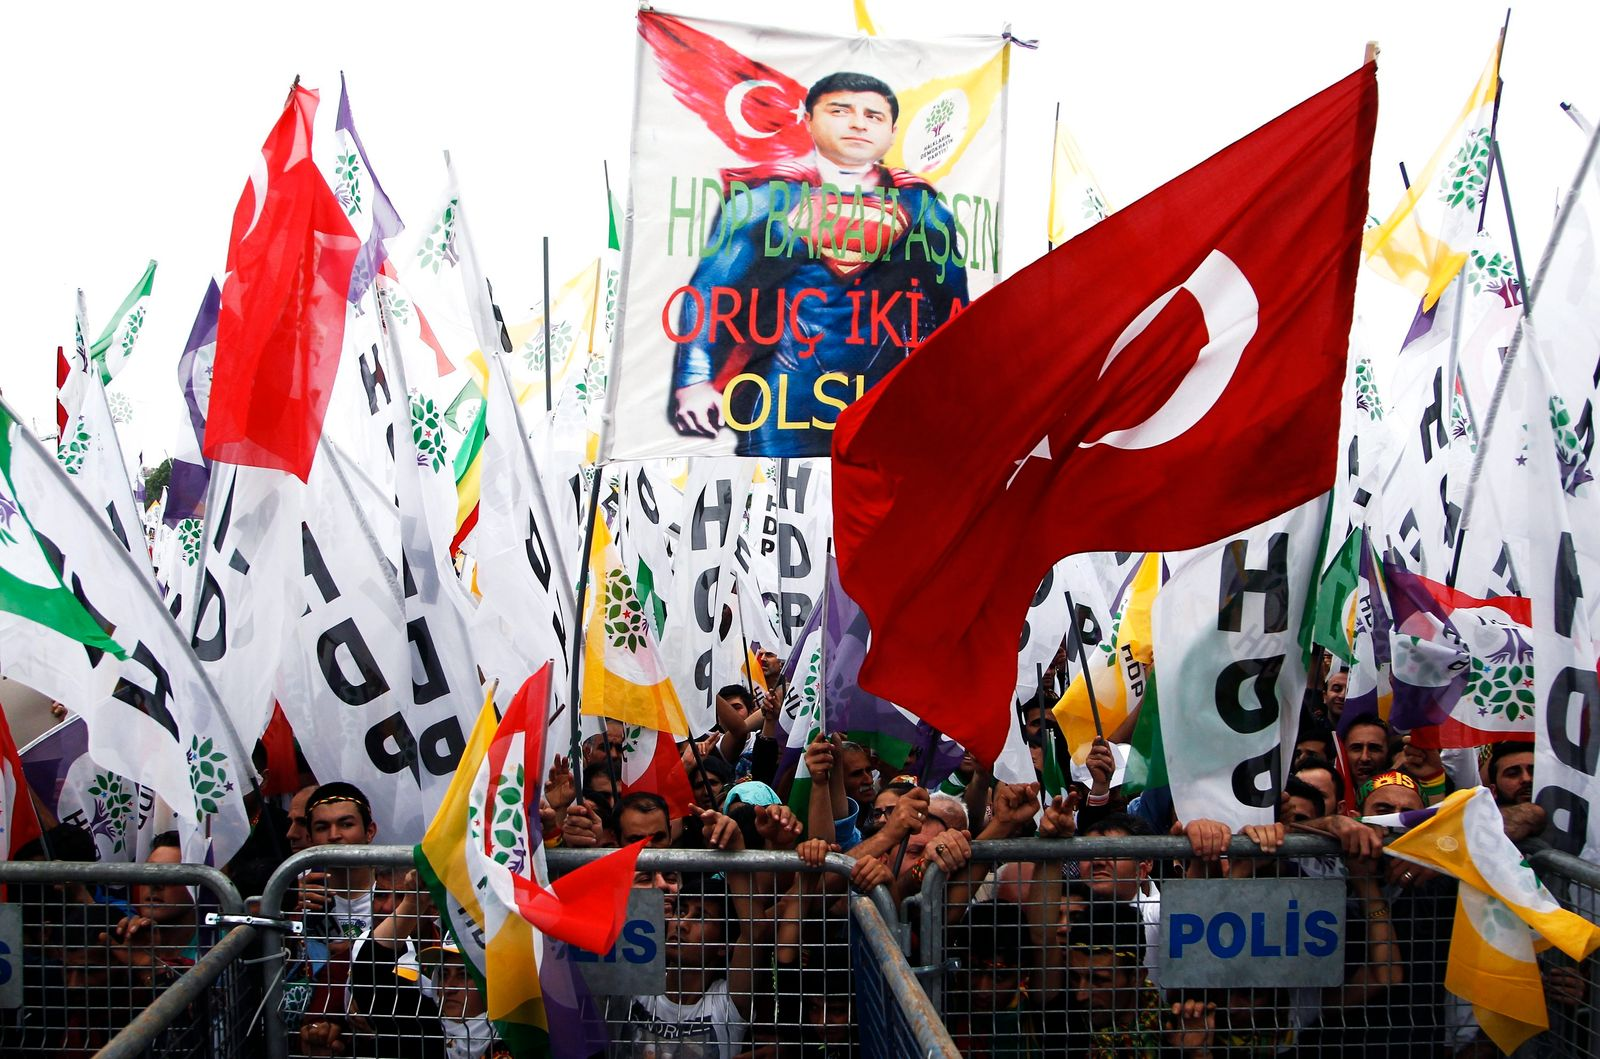 Campaigning continues ahead of Turkish general elections